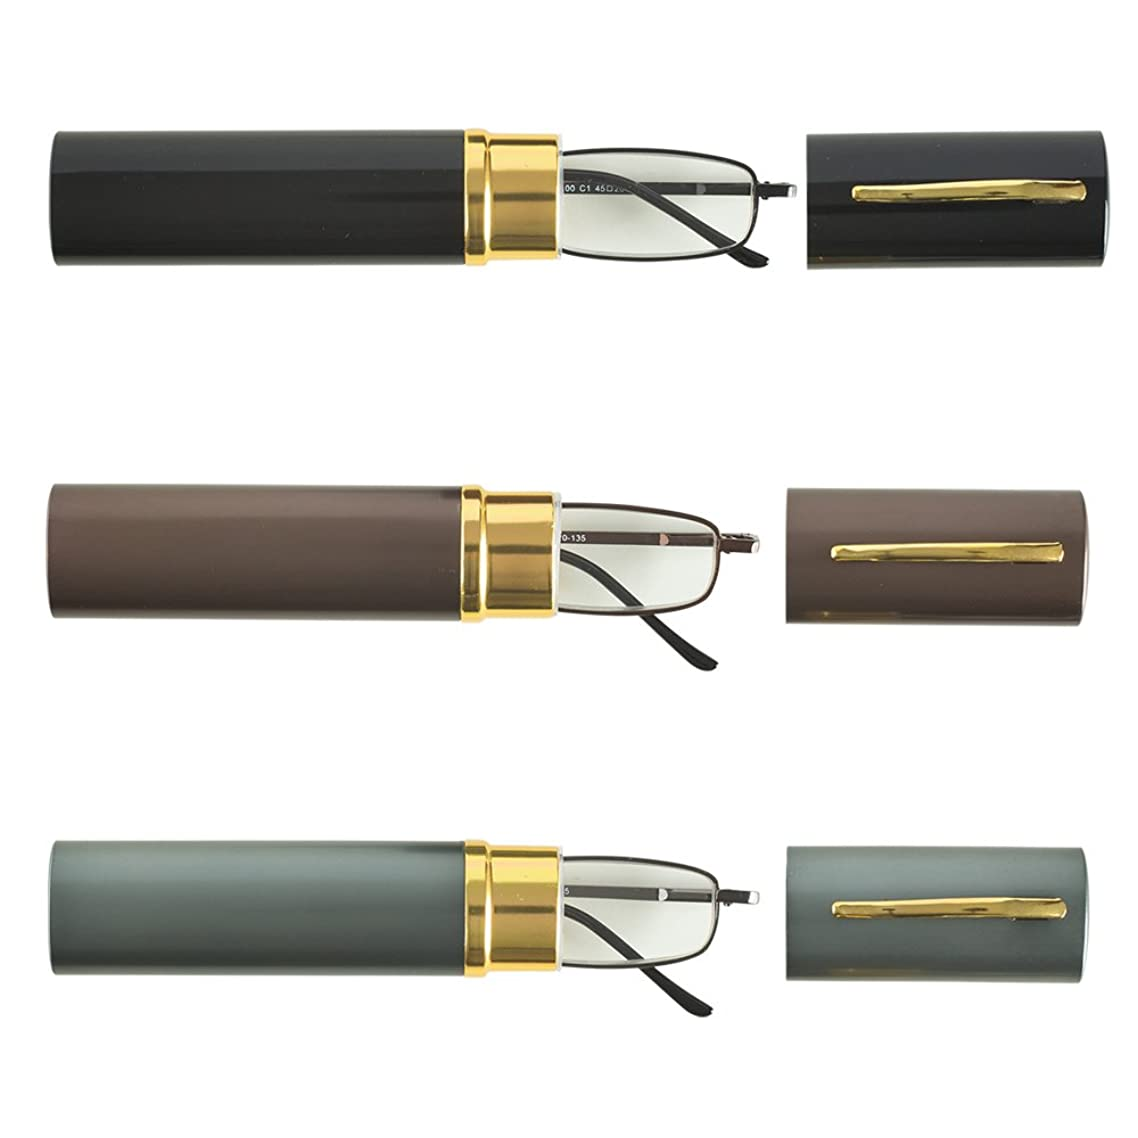 3 Compact Pocket Reading Glasses in Pen Clip Tube Case - Black, Brown, and Gunmetal Gray